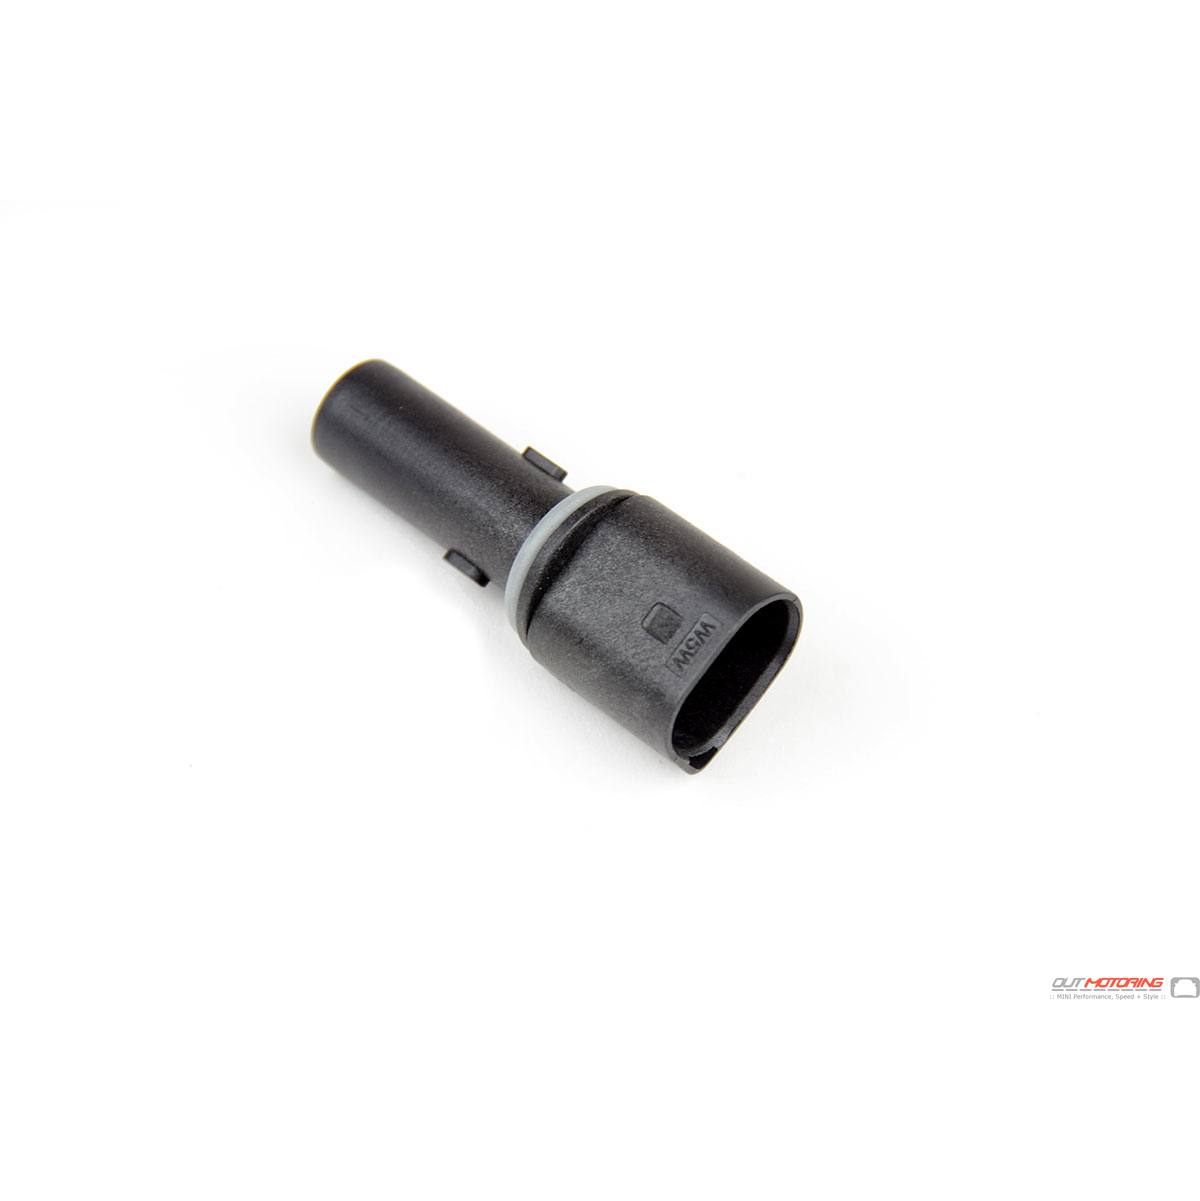 63128380205 mini cooper replacement bulb socket parking light mini cooper accessories mini Mini bulbs